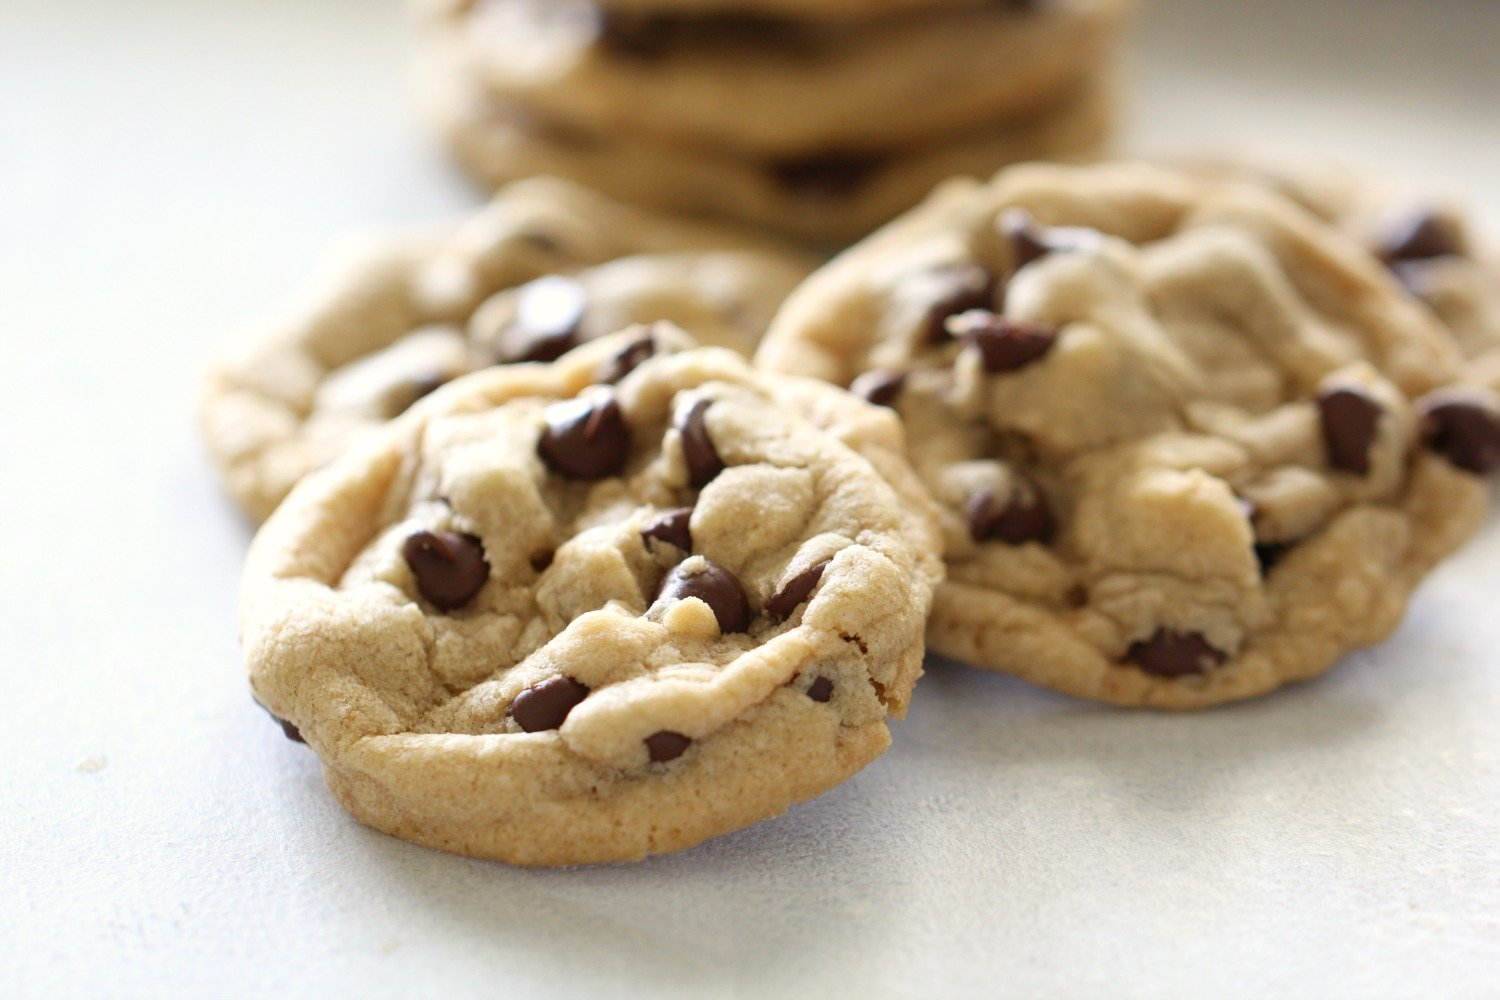 Chocolate Chip Cookies together